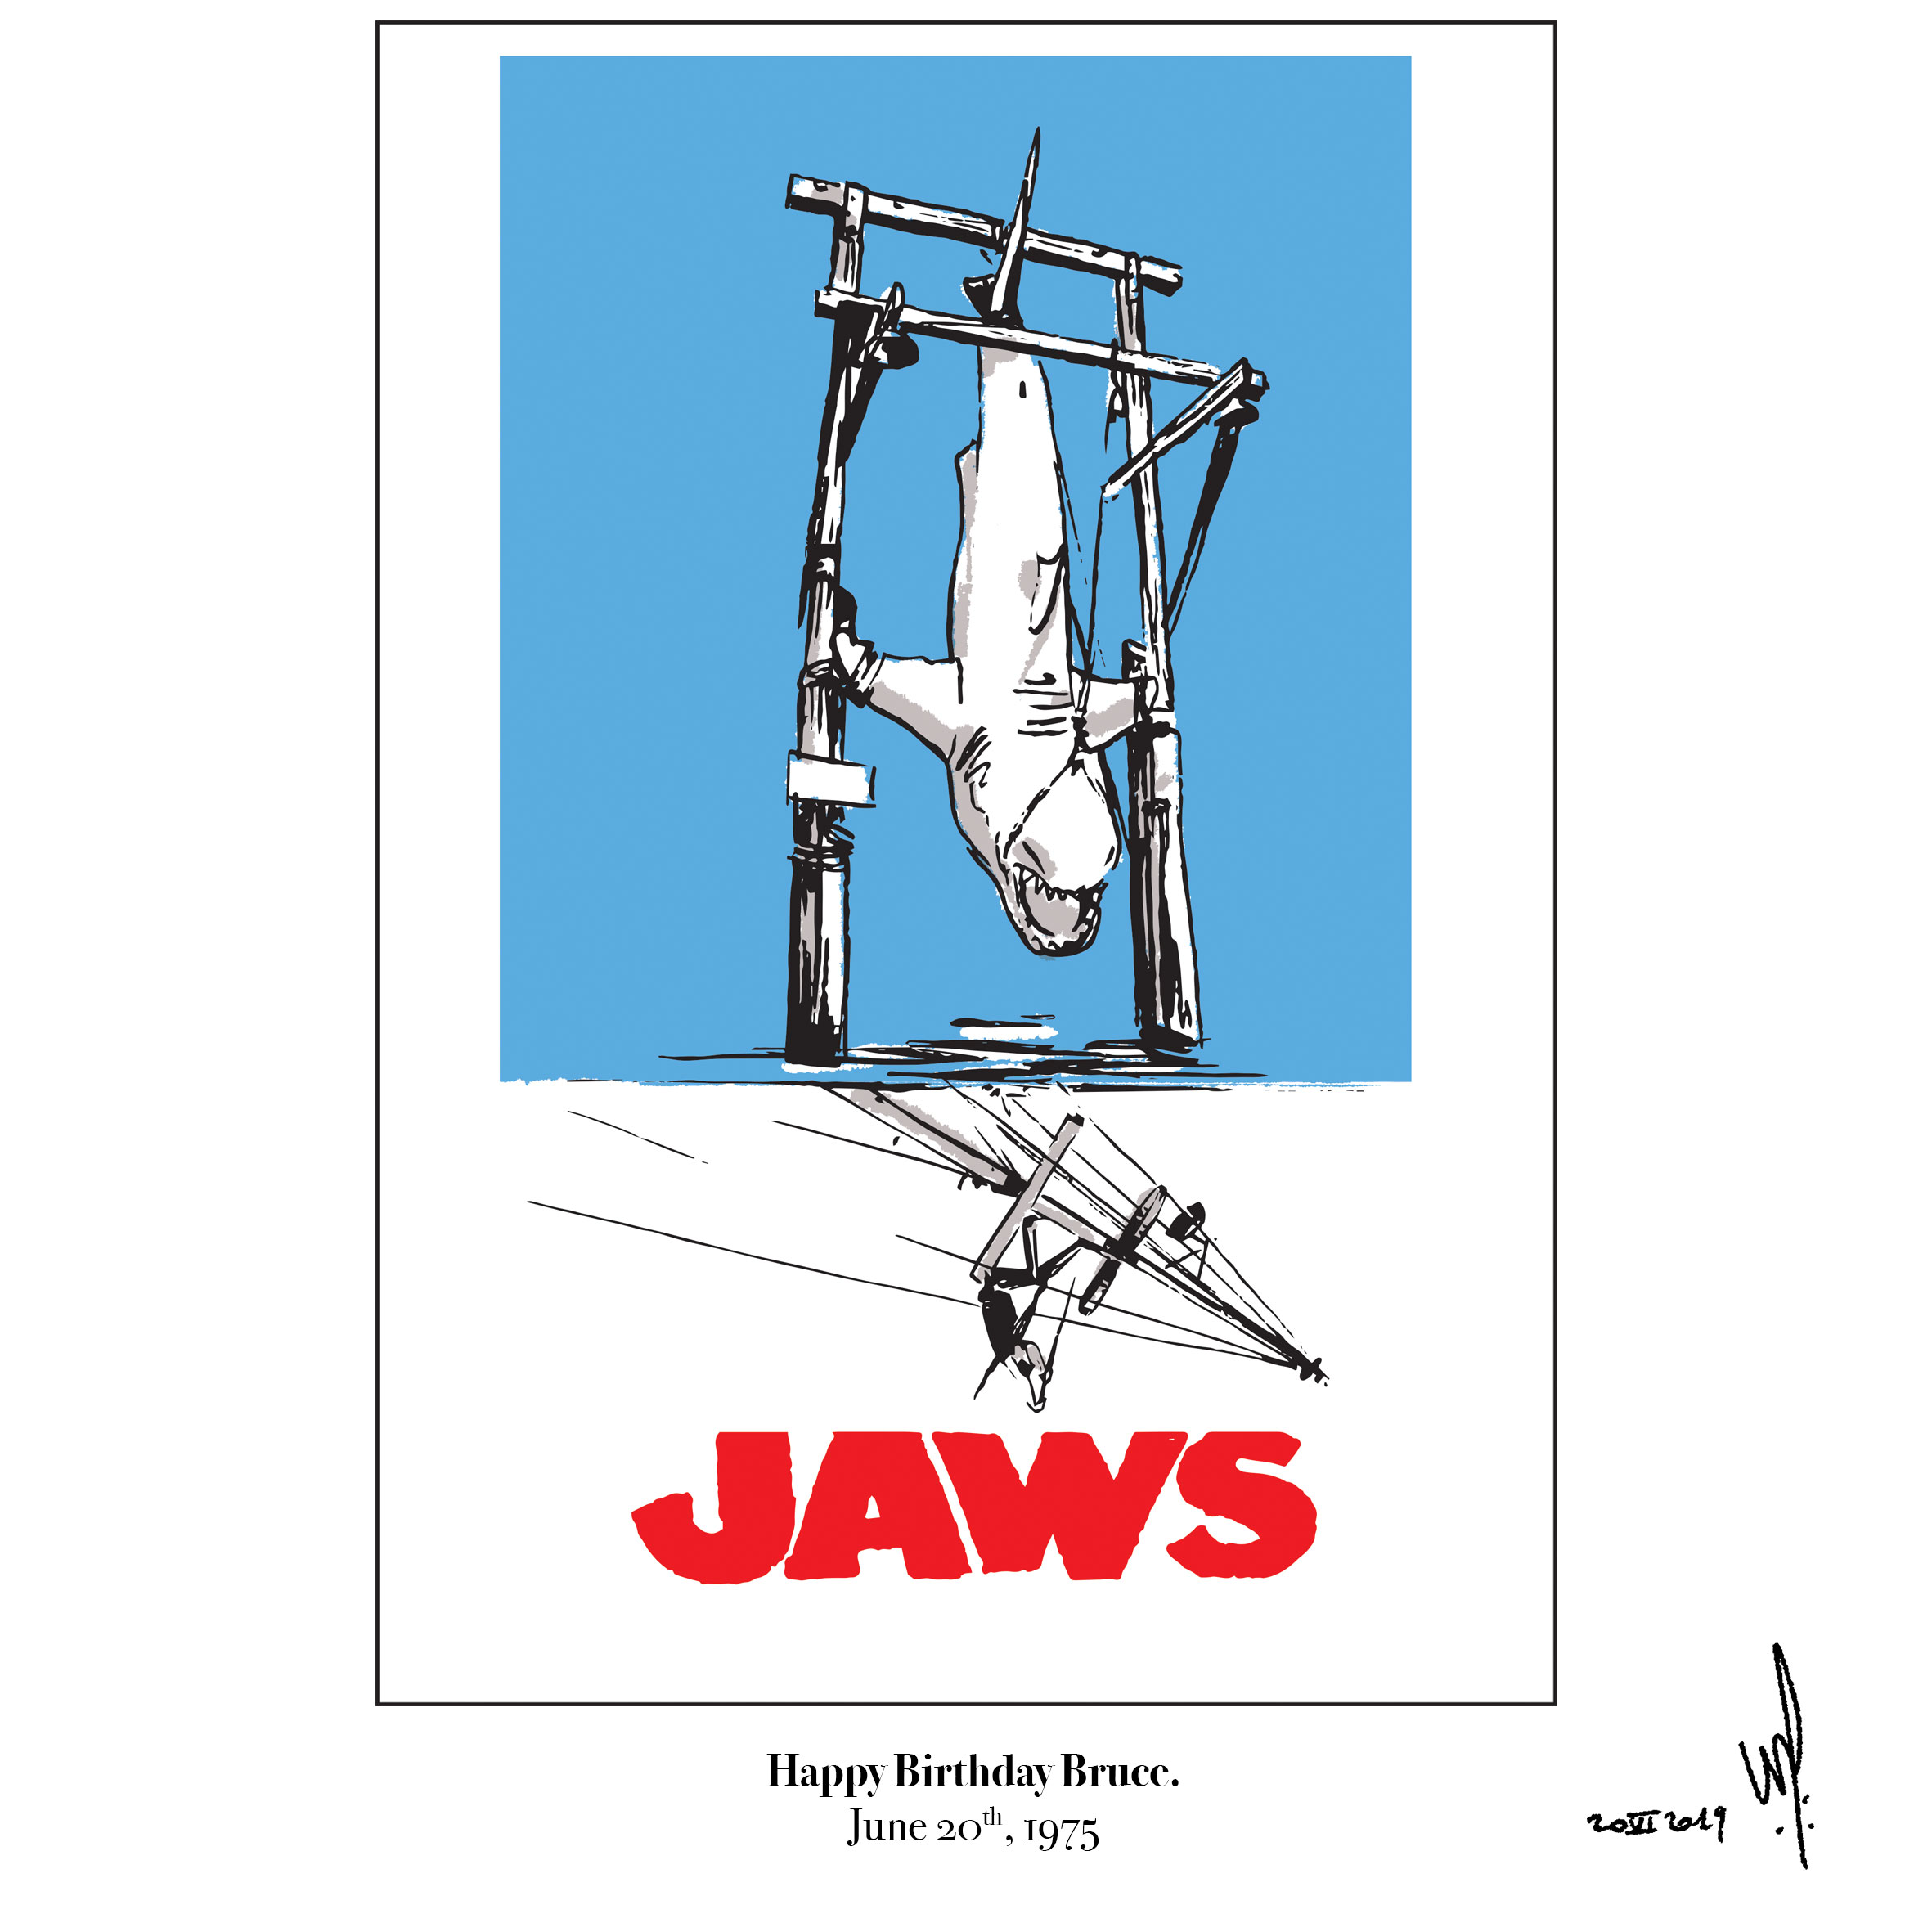 JAWS_BRUCE_BIRTHDAY